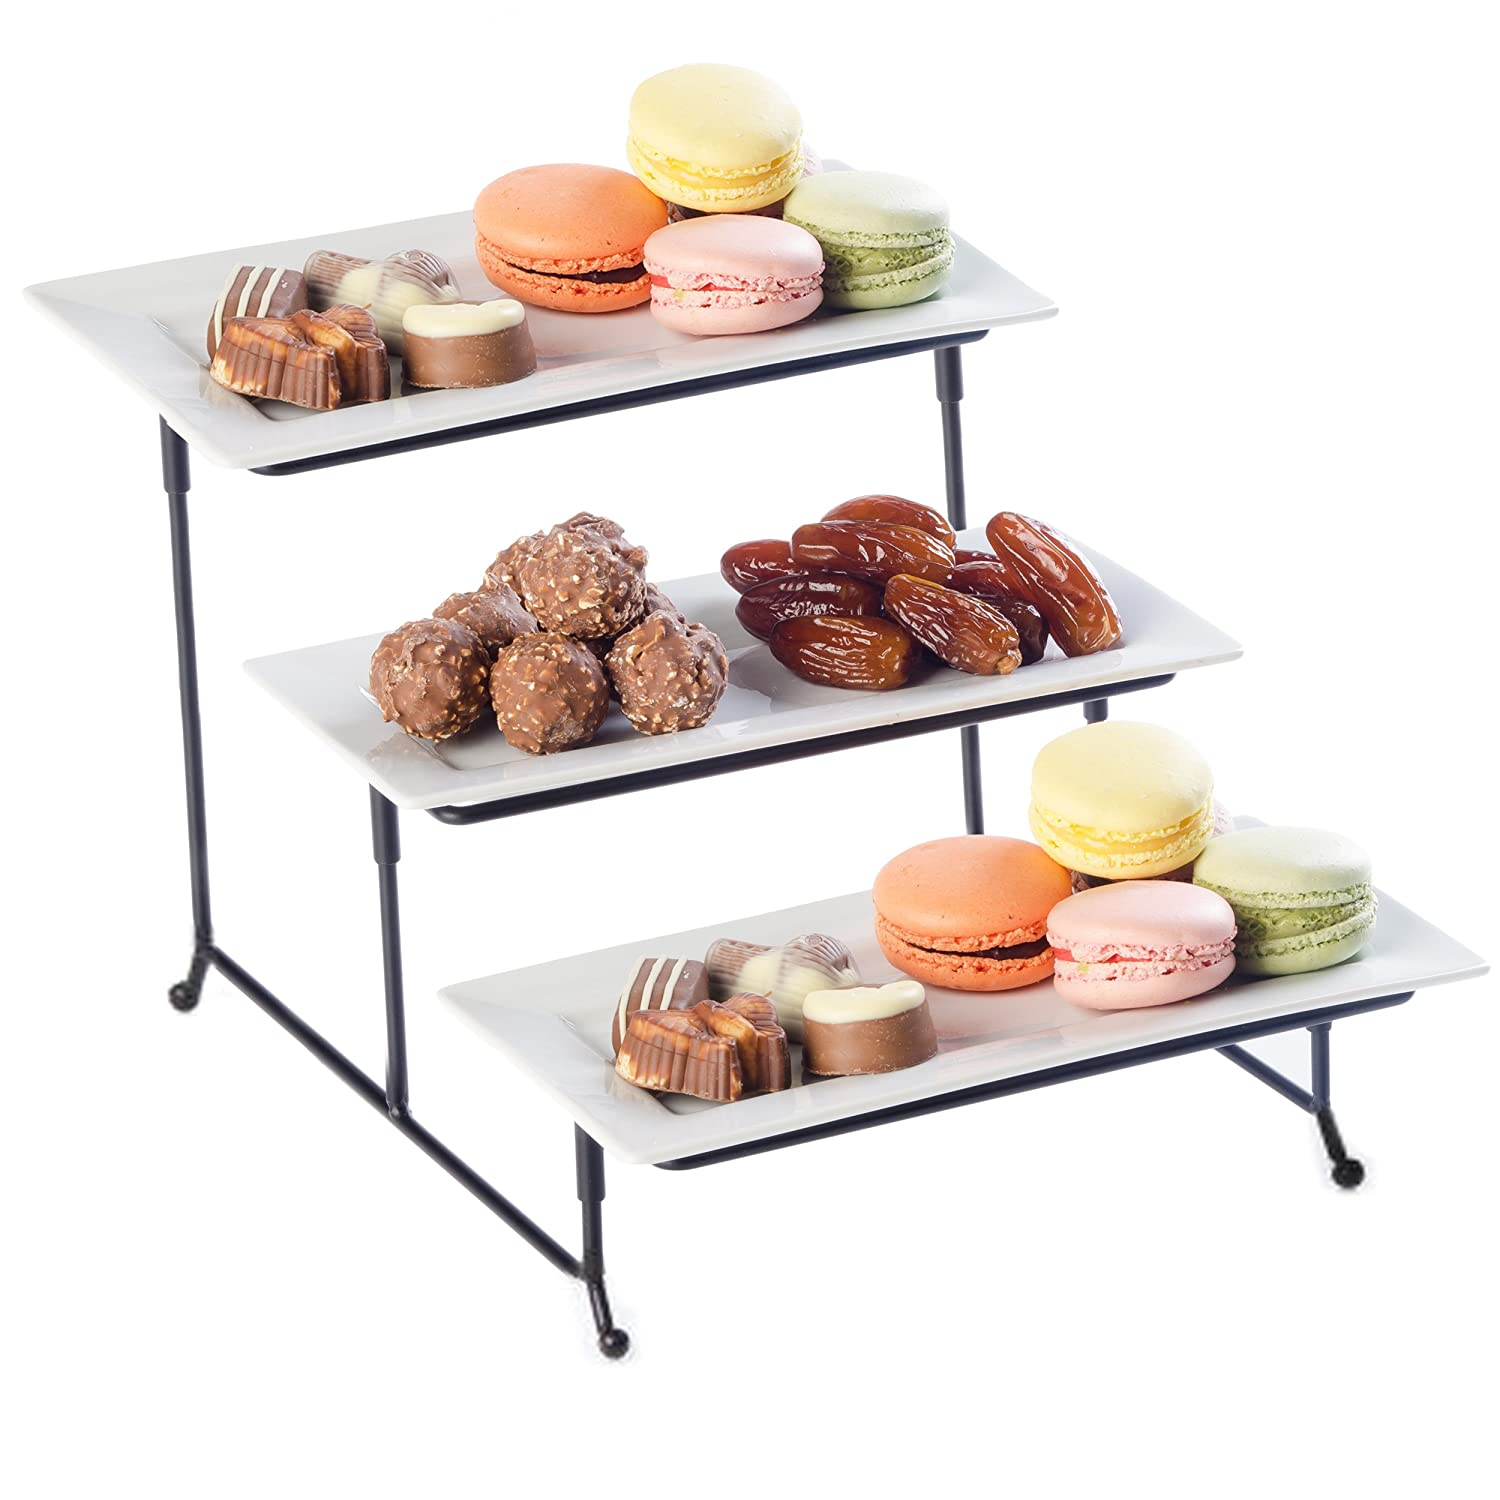 Food Serving Tray Set 3 Tier Metal Display Stand With Three White Rectangular Dishes Platters Wire Footed Steel Rack For Salad Bowls Fruit Cake Cookies Collapsible Classy Serveware for Parties Hosting Perlli P-3T-SP